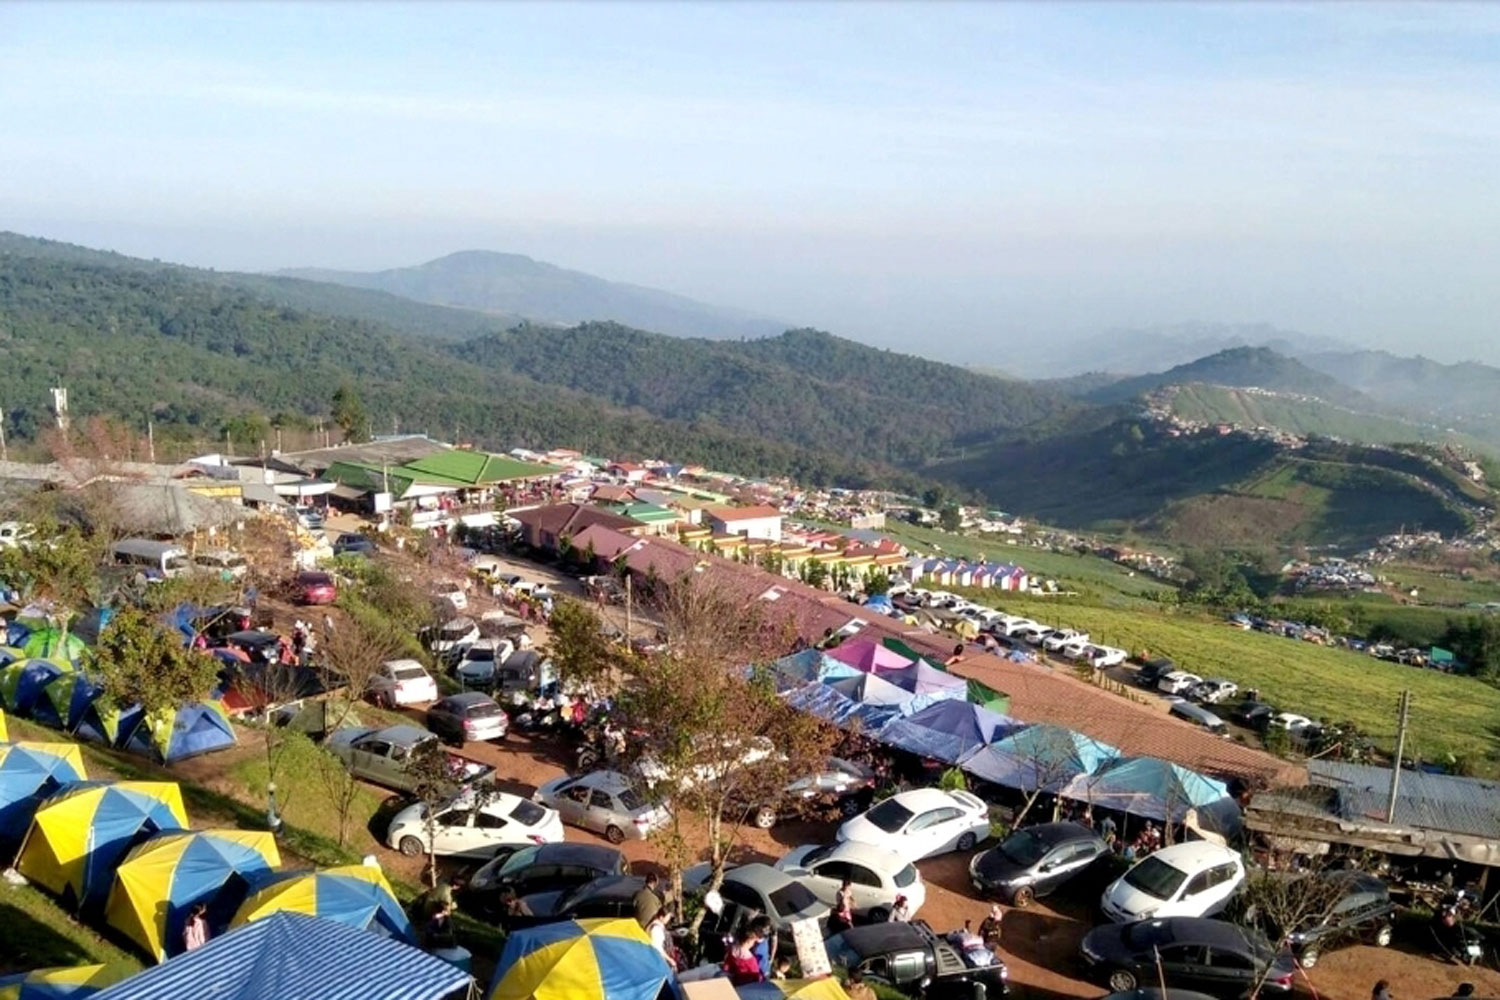 Phu Thap Boek in Lom Kao district of Phetchabun is a popular tourist attraction but community leaders say residents' health and safety outweighs any economic benefits for now. (Photo: Sunthorn Kongwarakom)